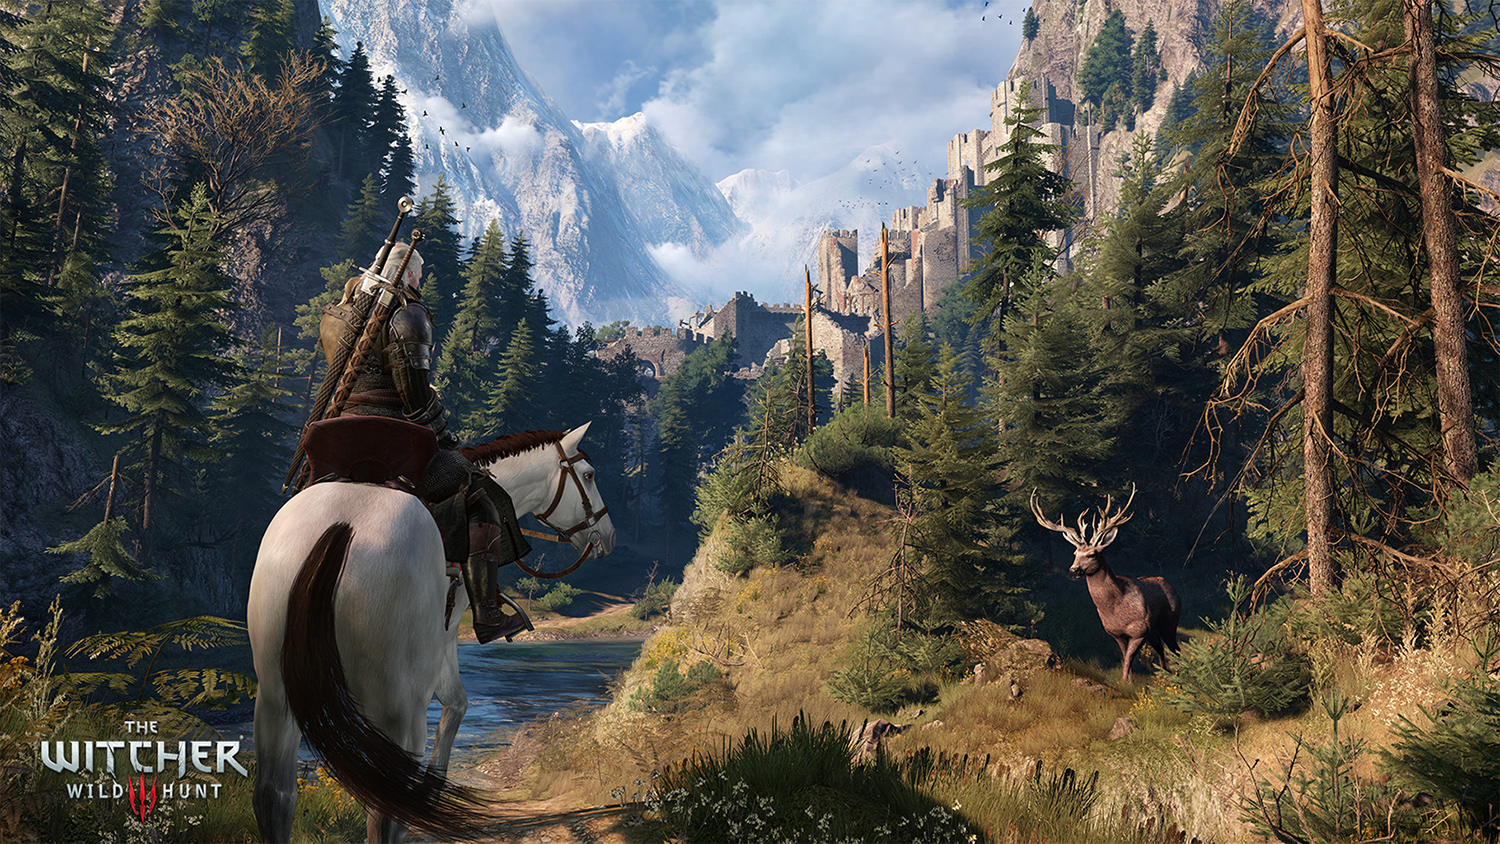 There's a fix for The Witcher 3's foliage issues on PS4 Pro screenshot